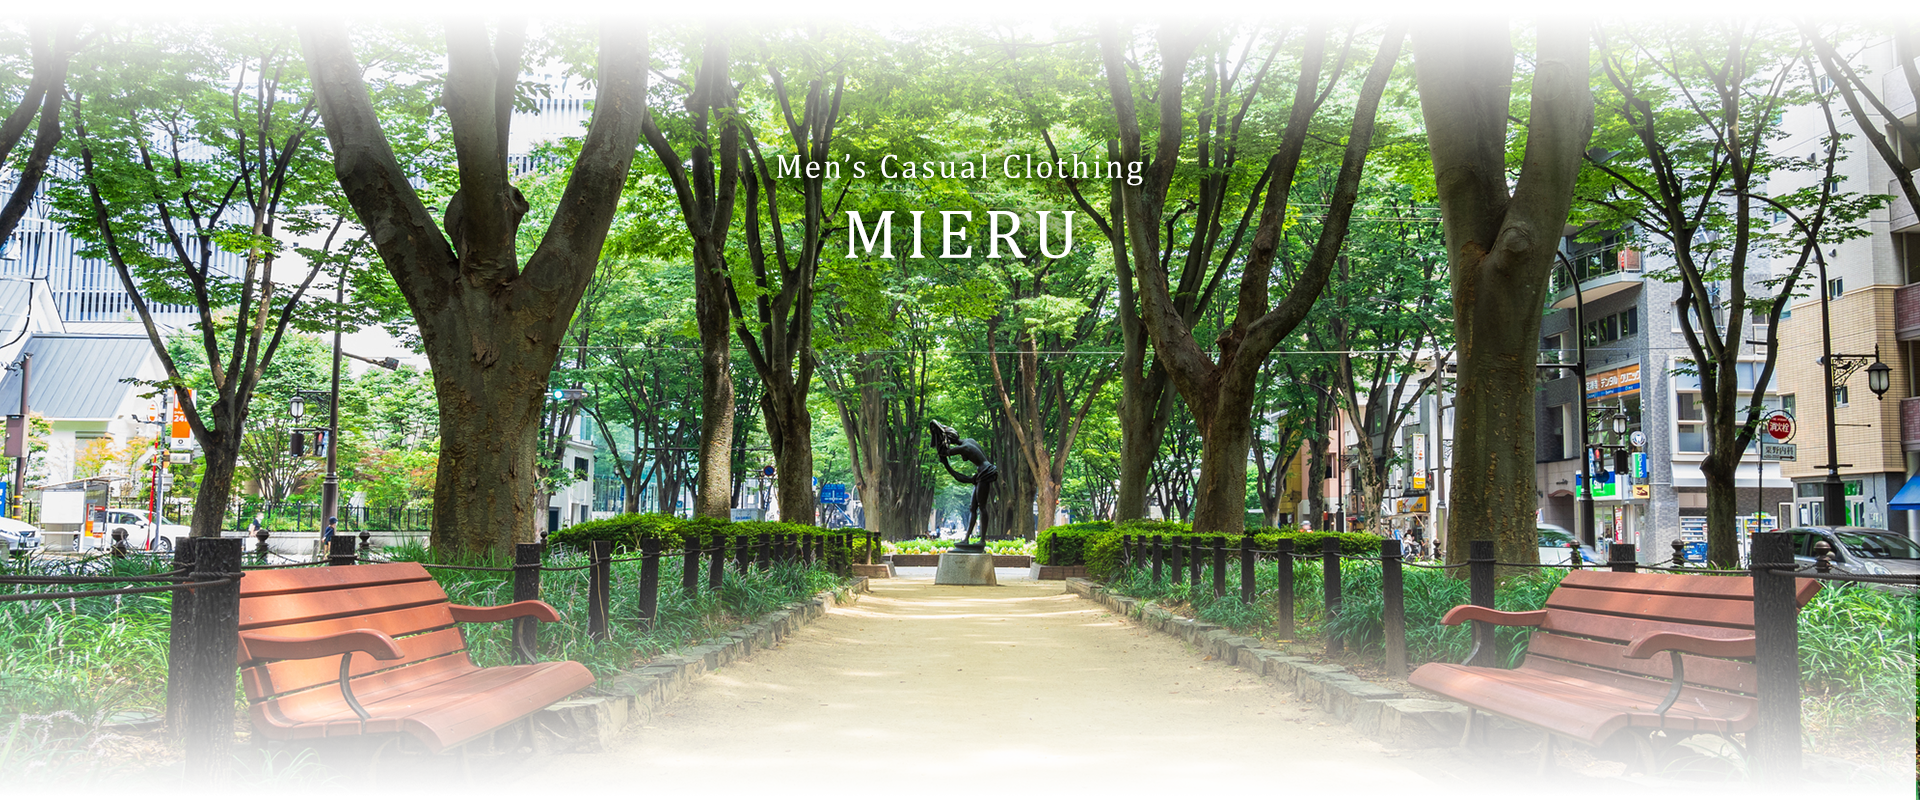 Men's Casual Clothing MIERU